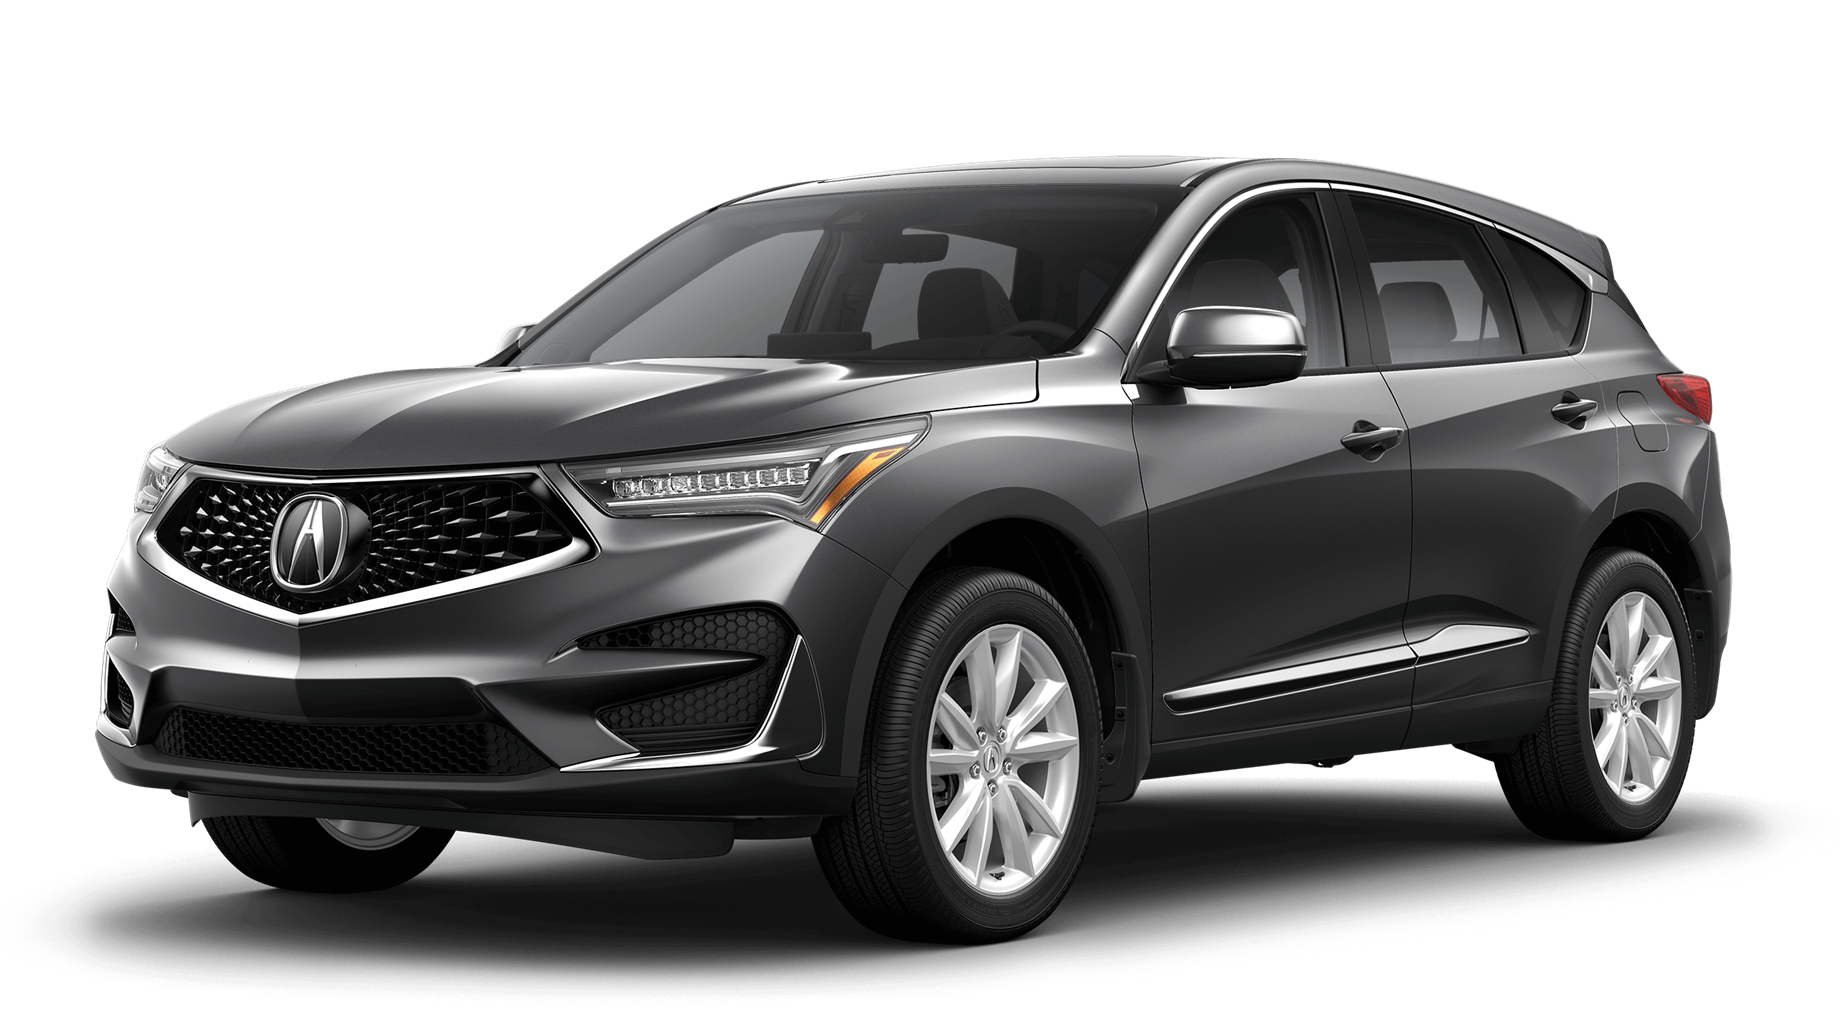 40 All New 2019 Acura Rdx Gunmetal Metallic Review And Specs Performance and New Engine for 2019 Acura Rdx Gunmetal Metallic Review And Specs